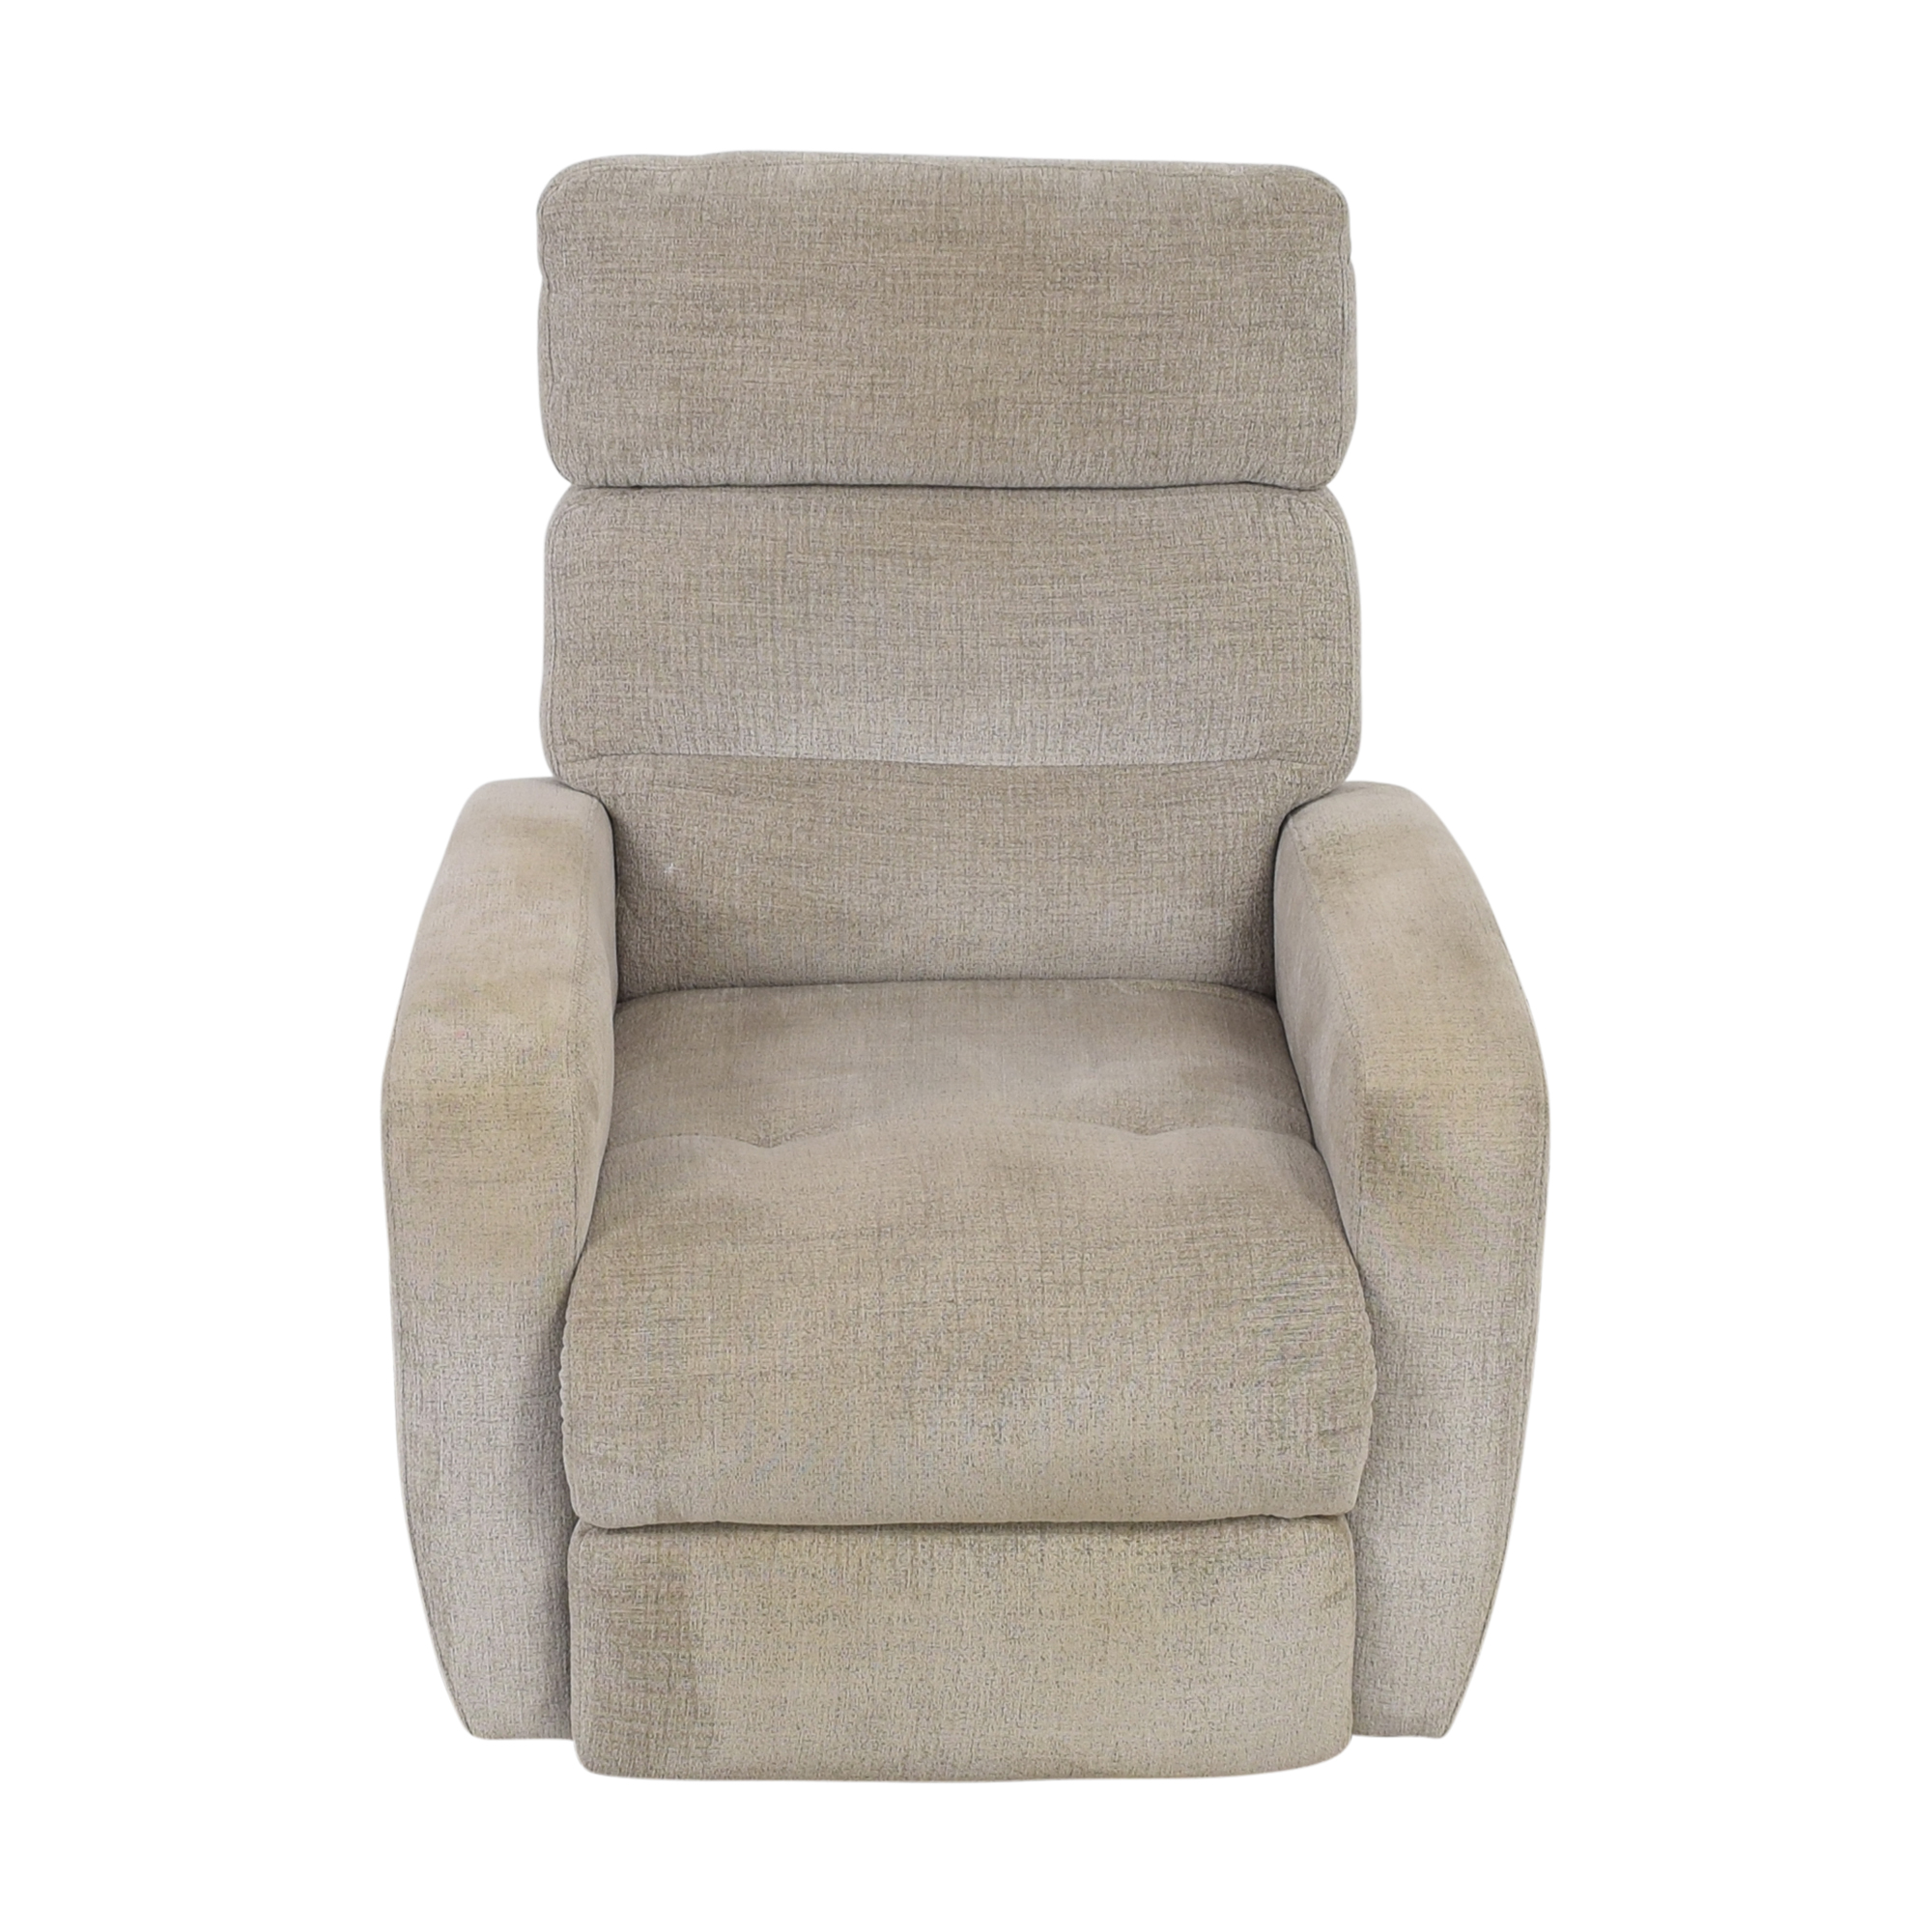 Macy's Macy's Stellarae Fabric Power Recliner nj